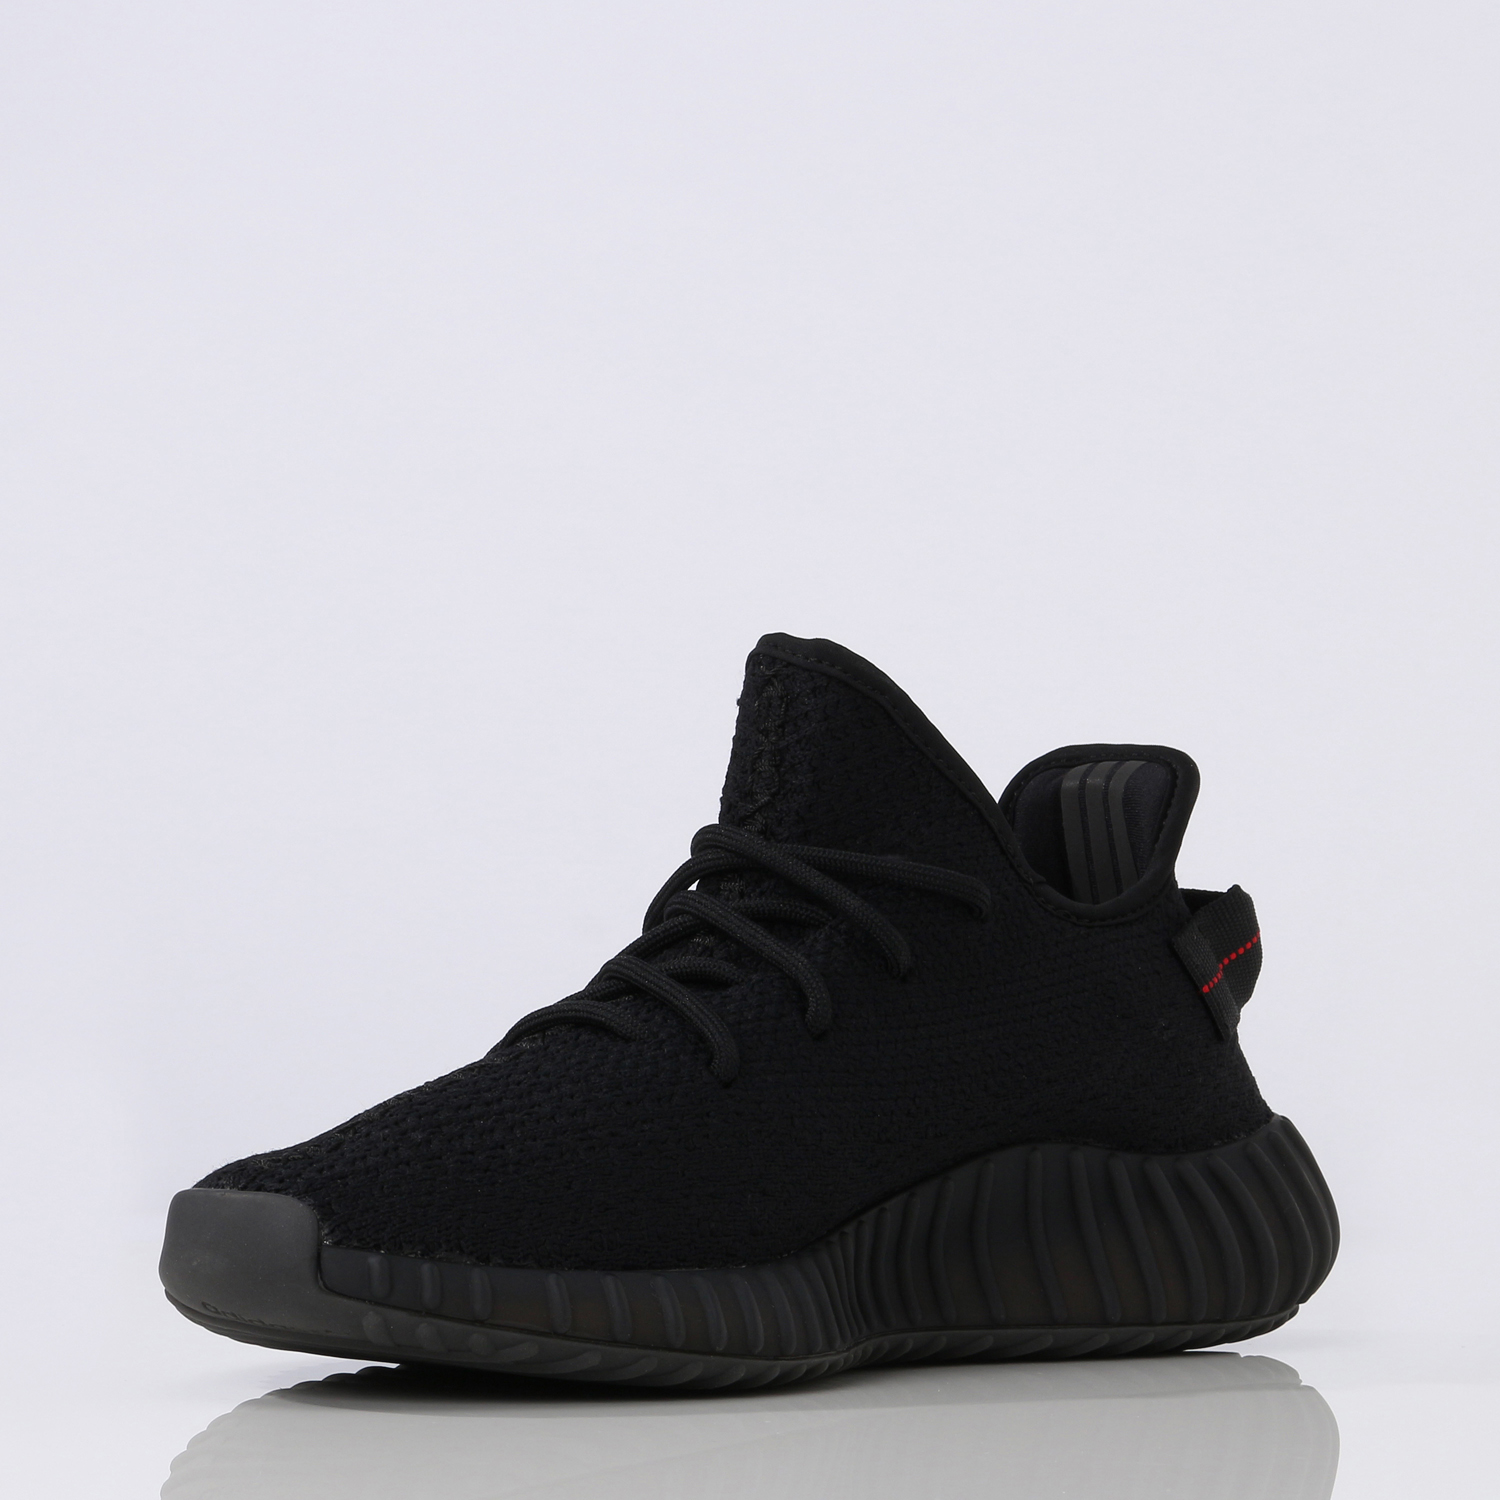 yeezy-boost-350-v2-black-red-cp9652-release-20170211